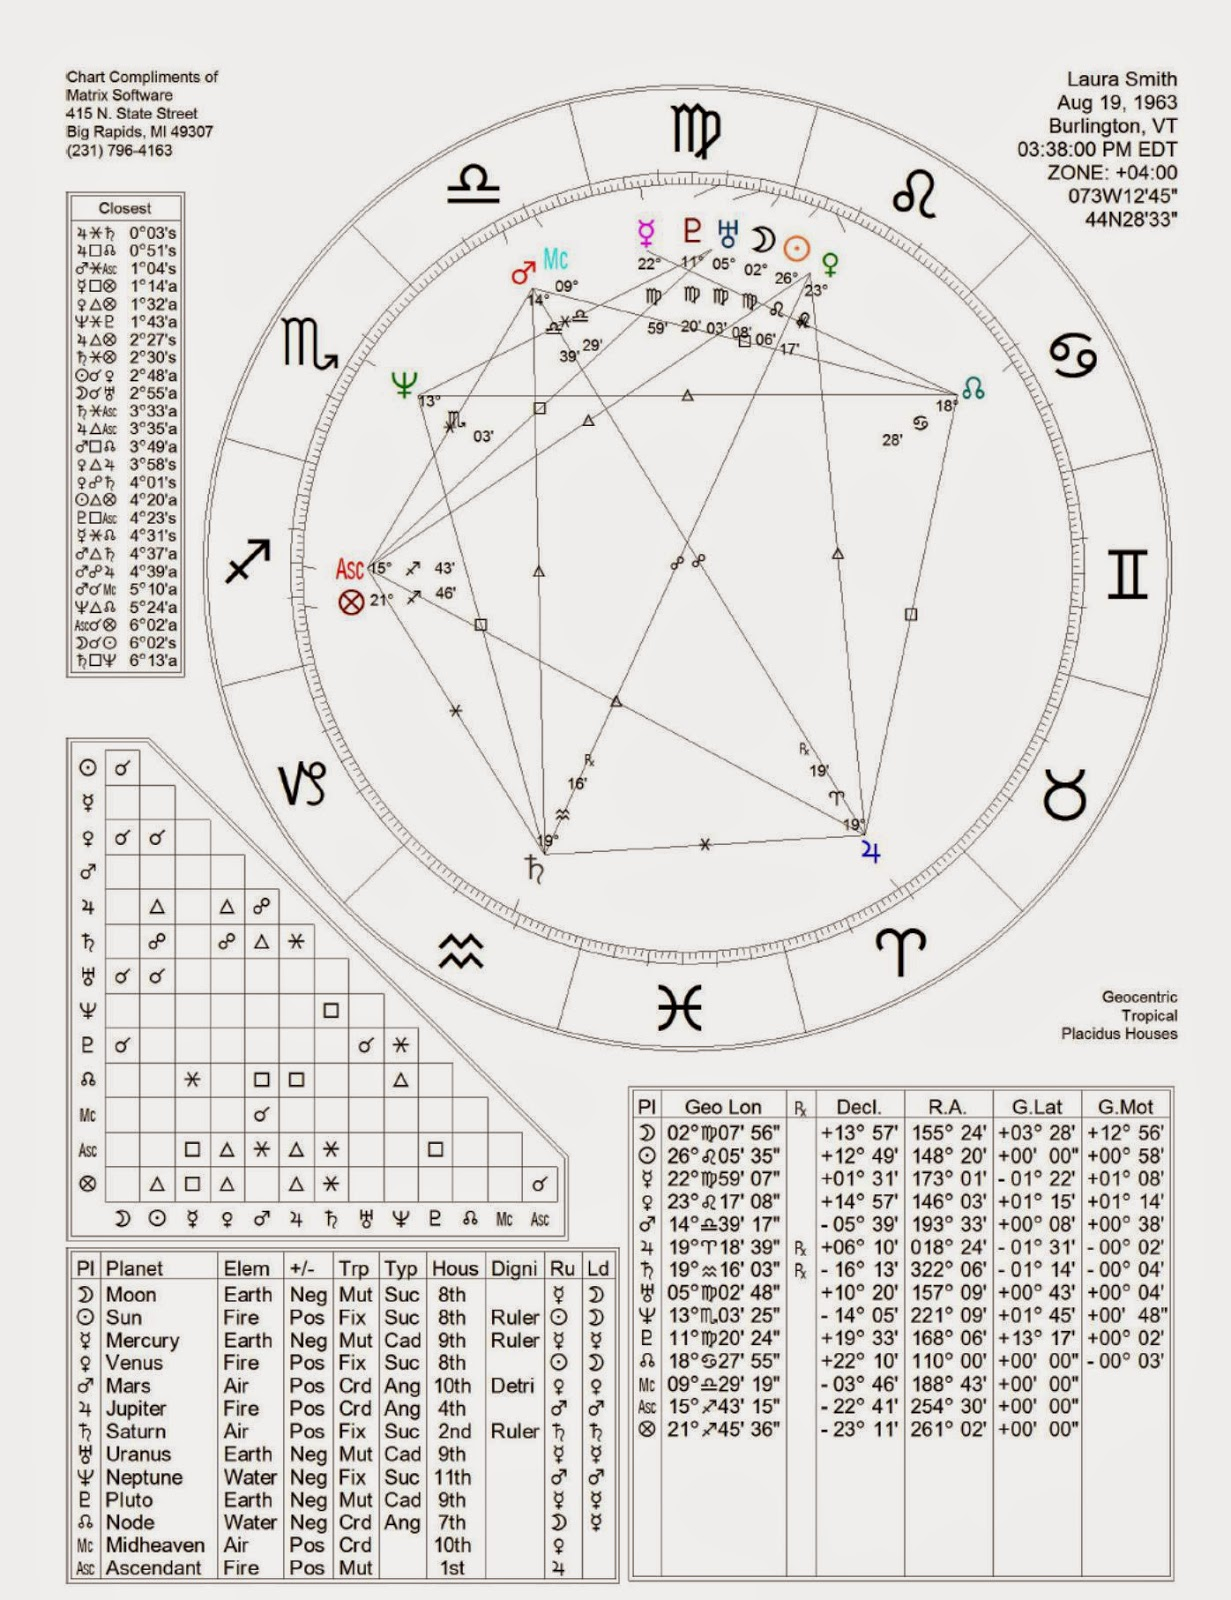 In search of puella the alchemists hand north node promise configuration 1 the configuration over the pinky finger relates to mars opposed jupiter with mars in libra and jupiter in aries nvjuhfo Image collections